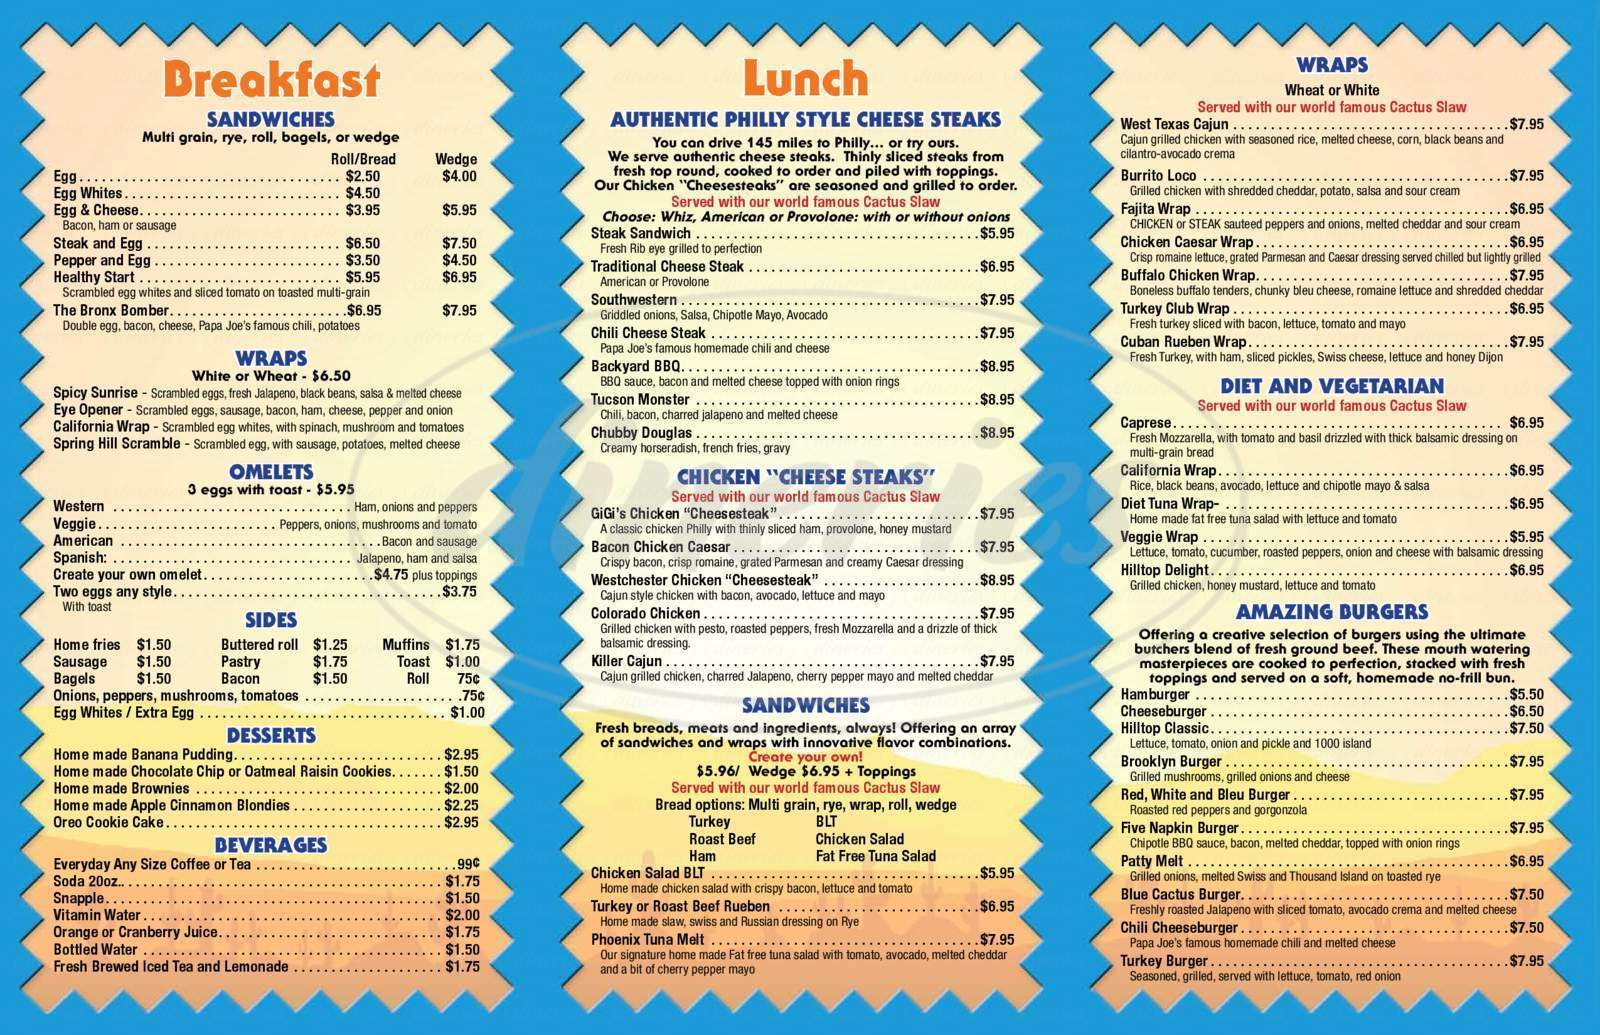 menu for Blue Cactus Grill